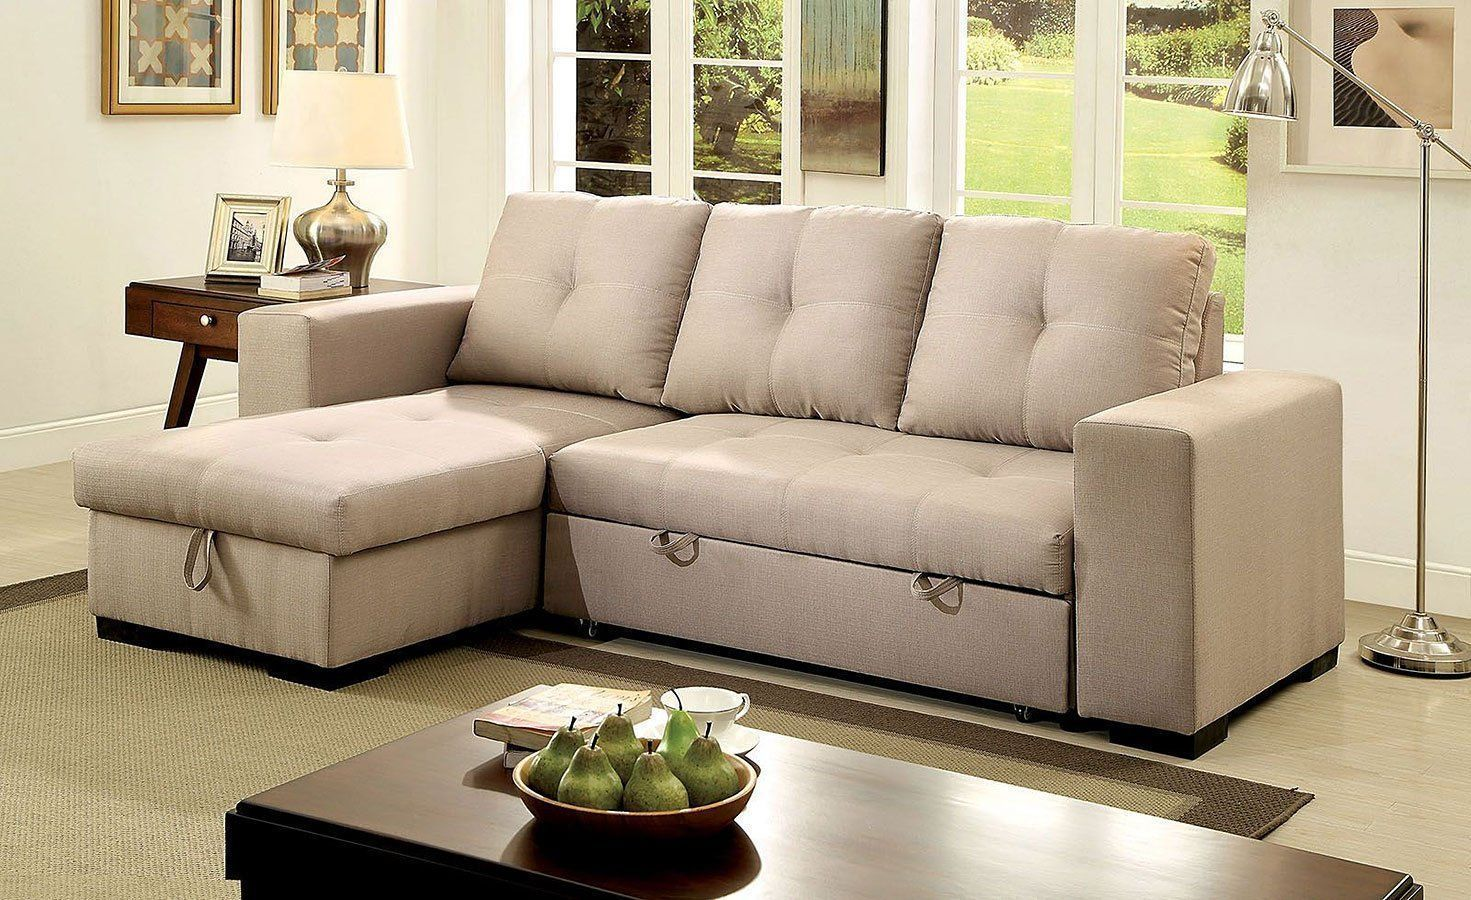 46 Living Room Design With Sofa Set To Perfect For Your Home Couches For Small Spaces Sofas For Small Spaces Corner Sofa Design